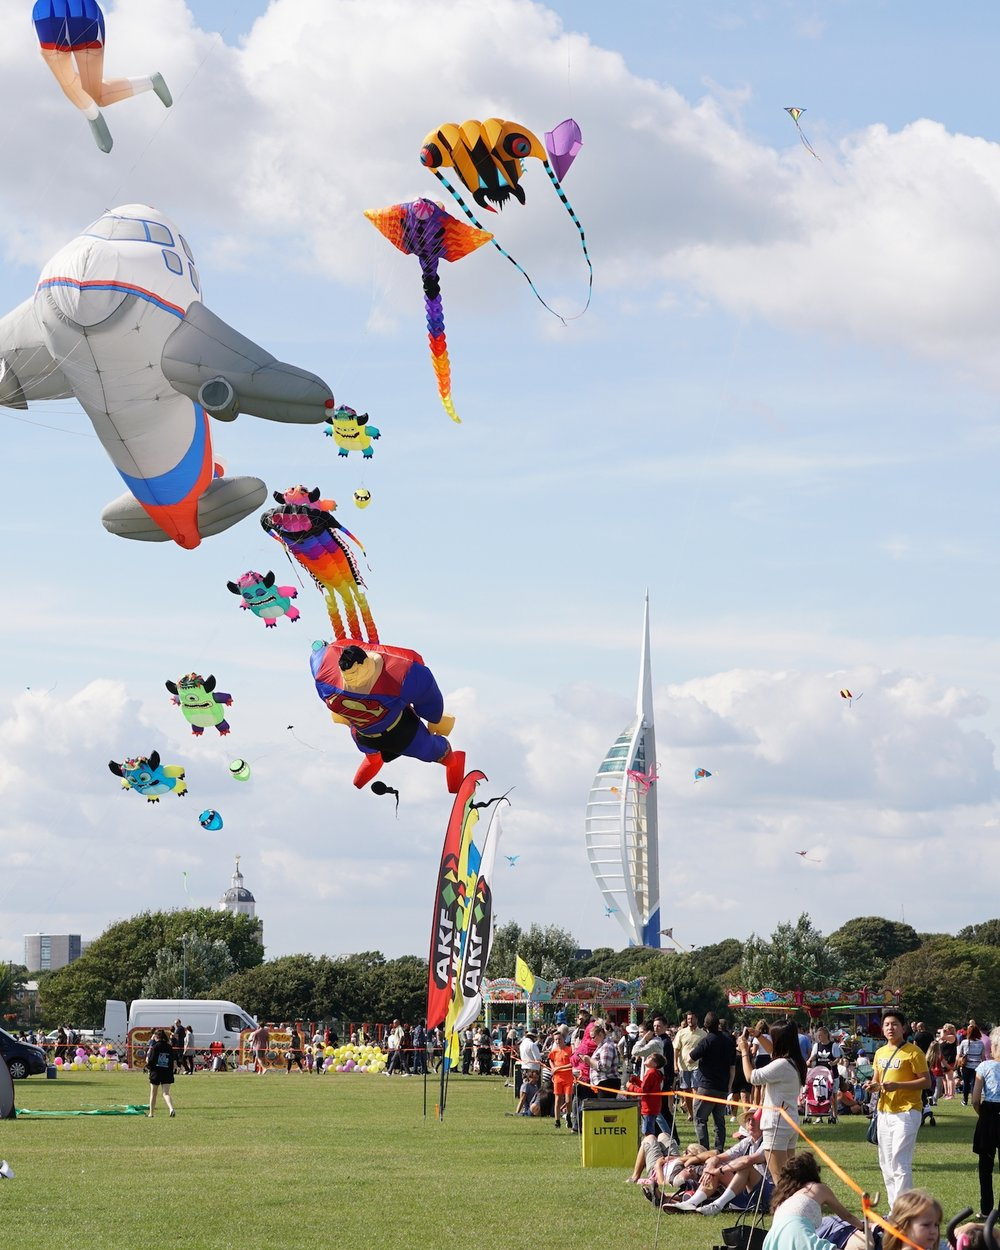 Portsmouth International Kite Festival